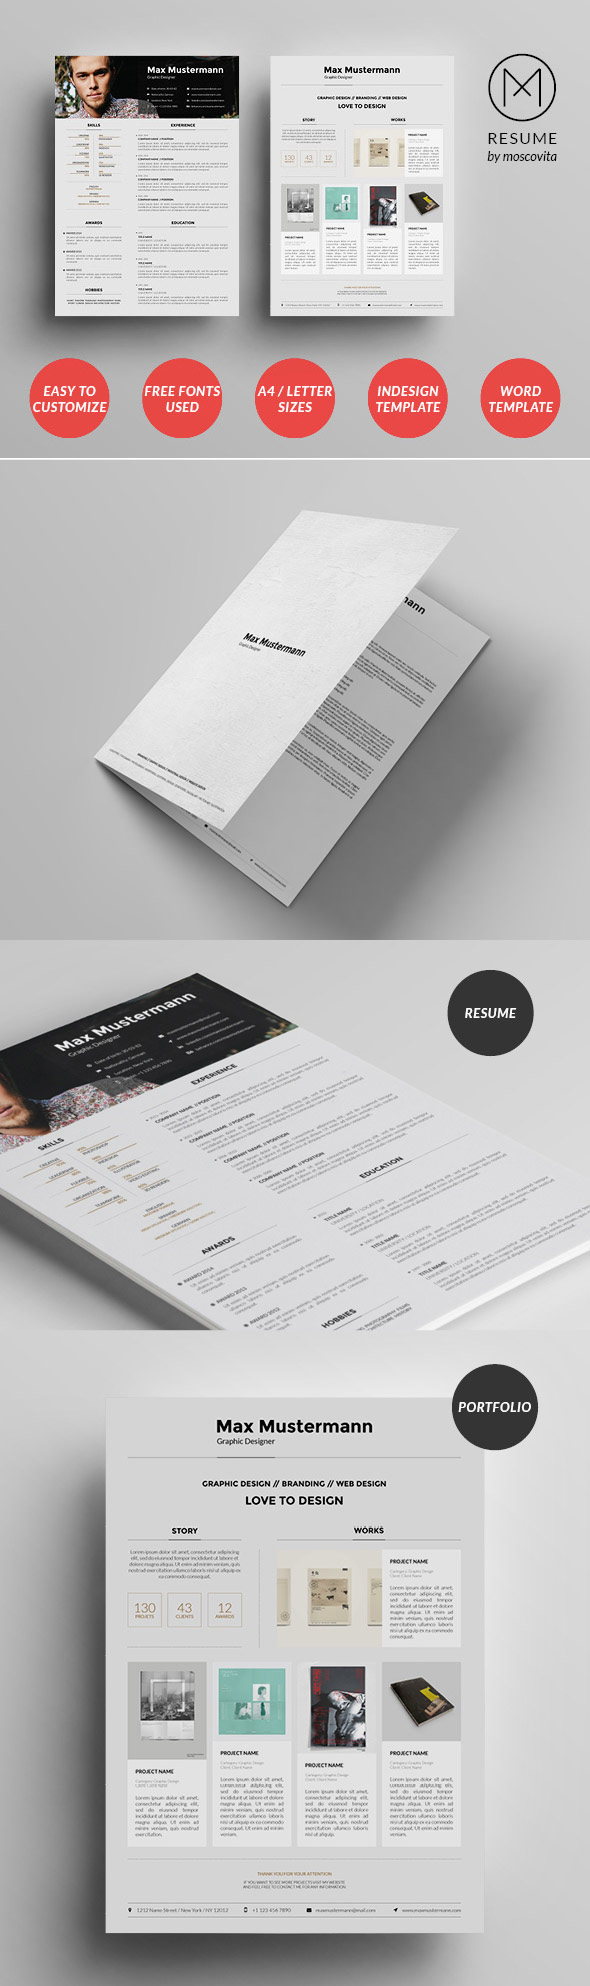 best resume templates design graphic design junction structured creative resume template design